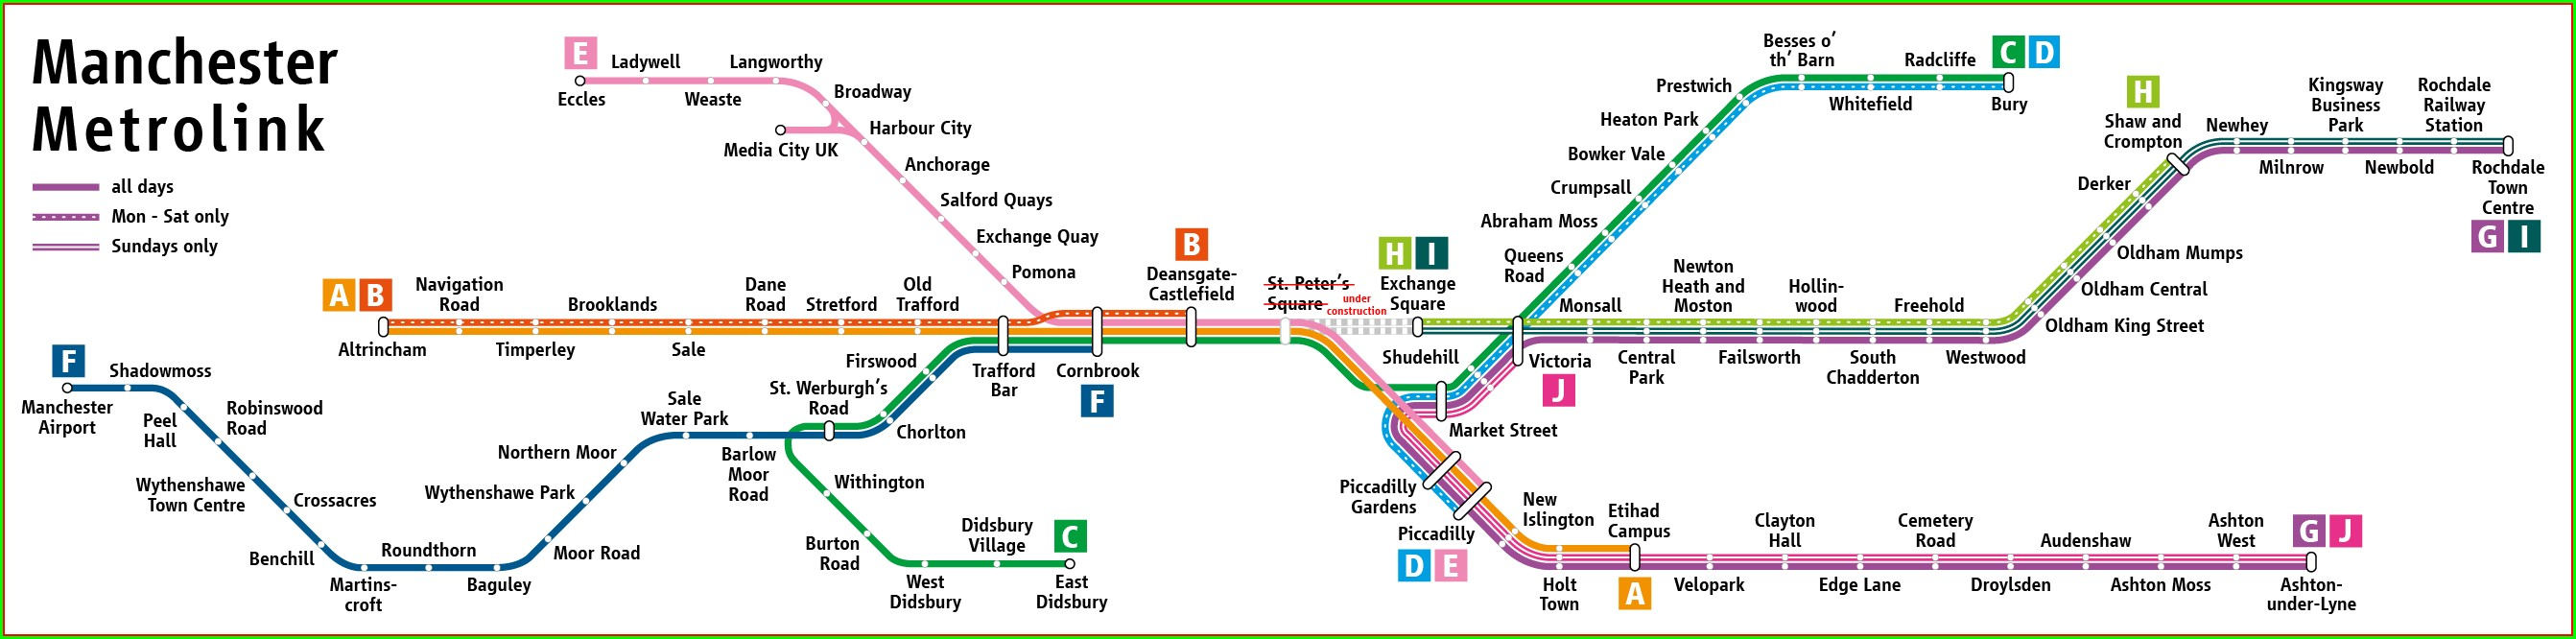 Metrolink Route Map Manchester